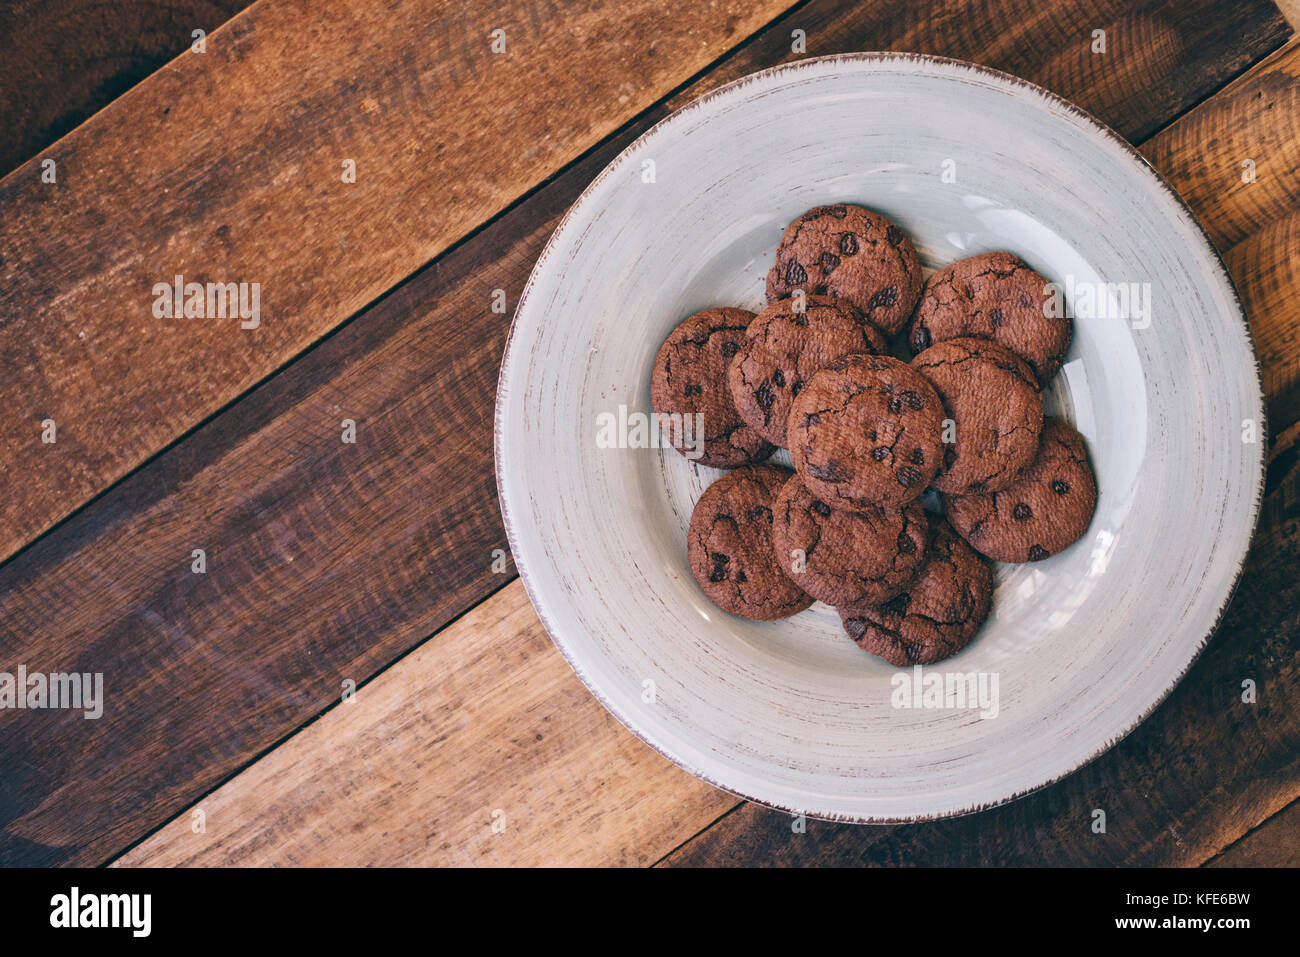 cookies in a plate on a wooden table Stock Photo